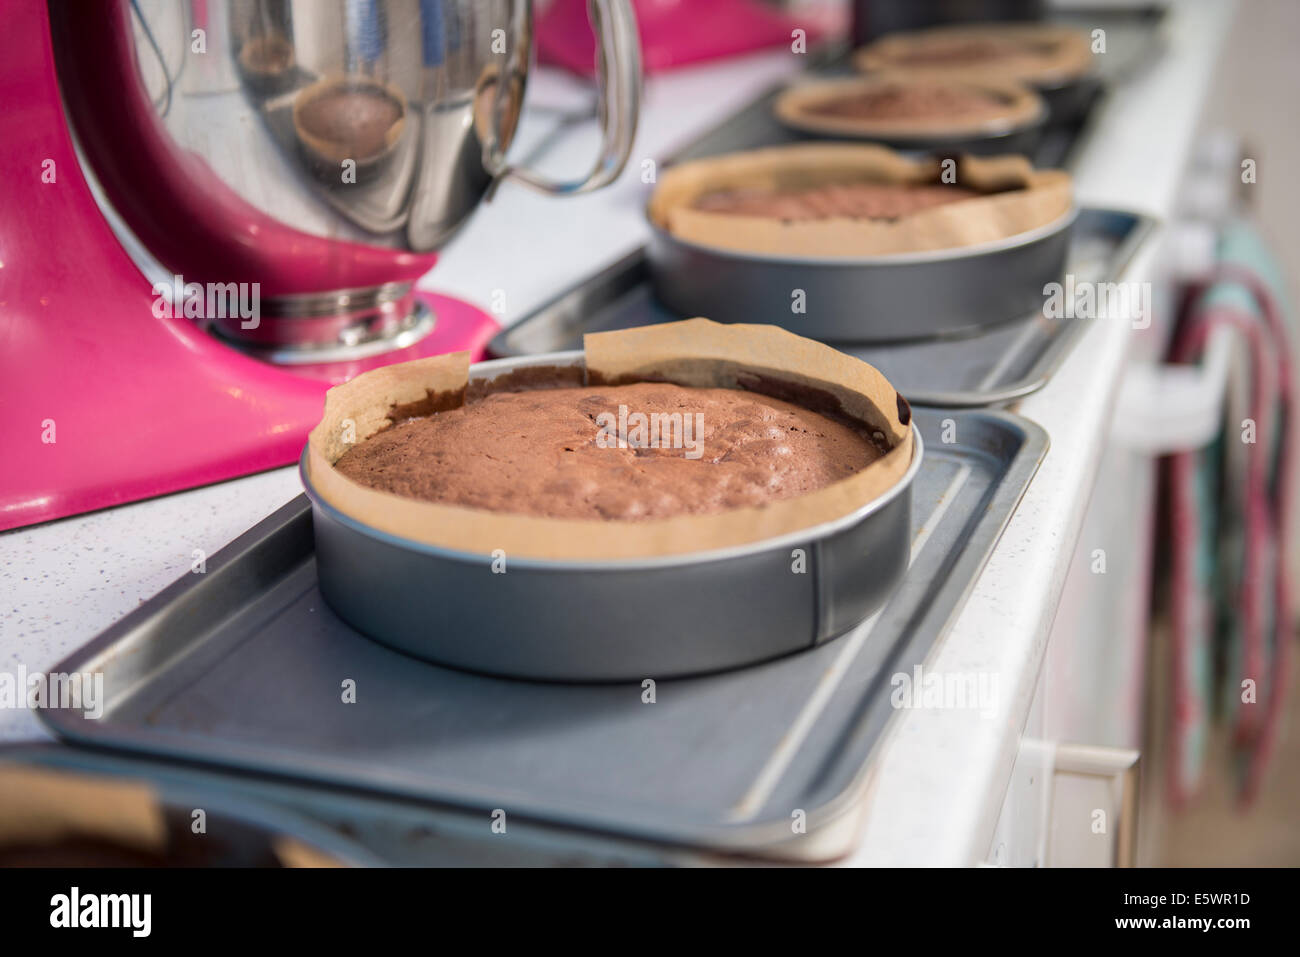 Row of cakes cooling off on top of ovens in bakery - Stock Image